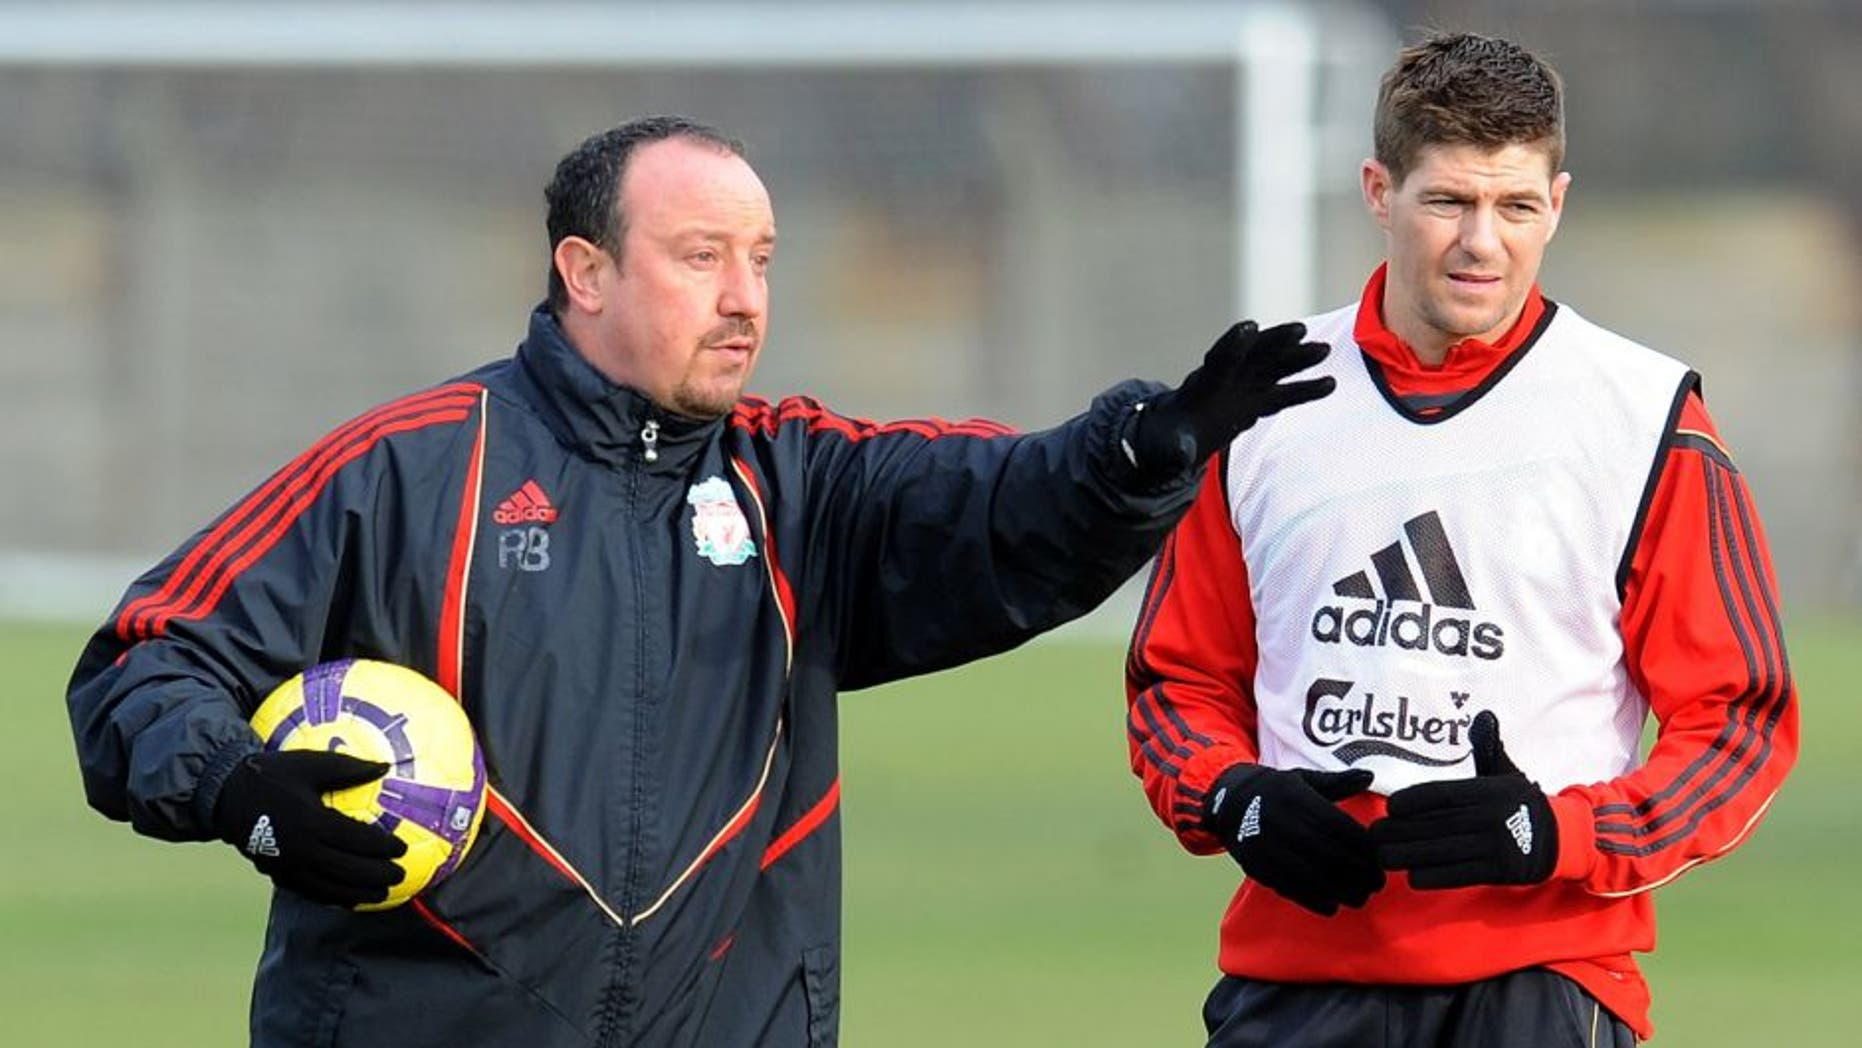 LIVERPOOL, ENGLAND - FEBRUARY 05: (THE SUN OUT) Liverpool Manager Rafael Benitez talks with Steven Gerrard during a Liverpool FC training session at Melwood Training Ground on February 5, 2010 in Liverpool, England. (Photo by John Powell/Liverpool FC via Getty Images)